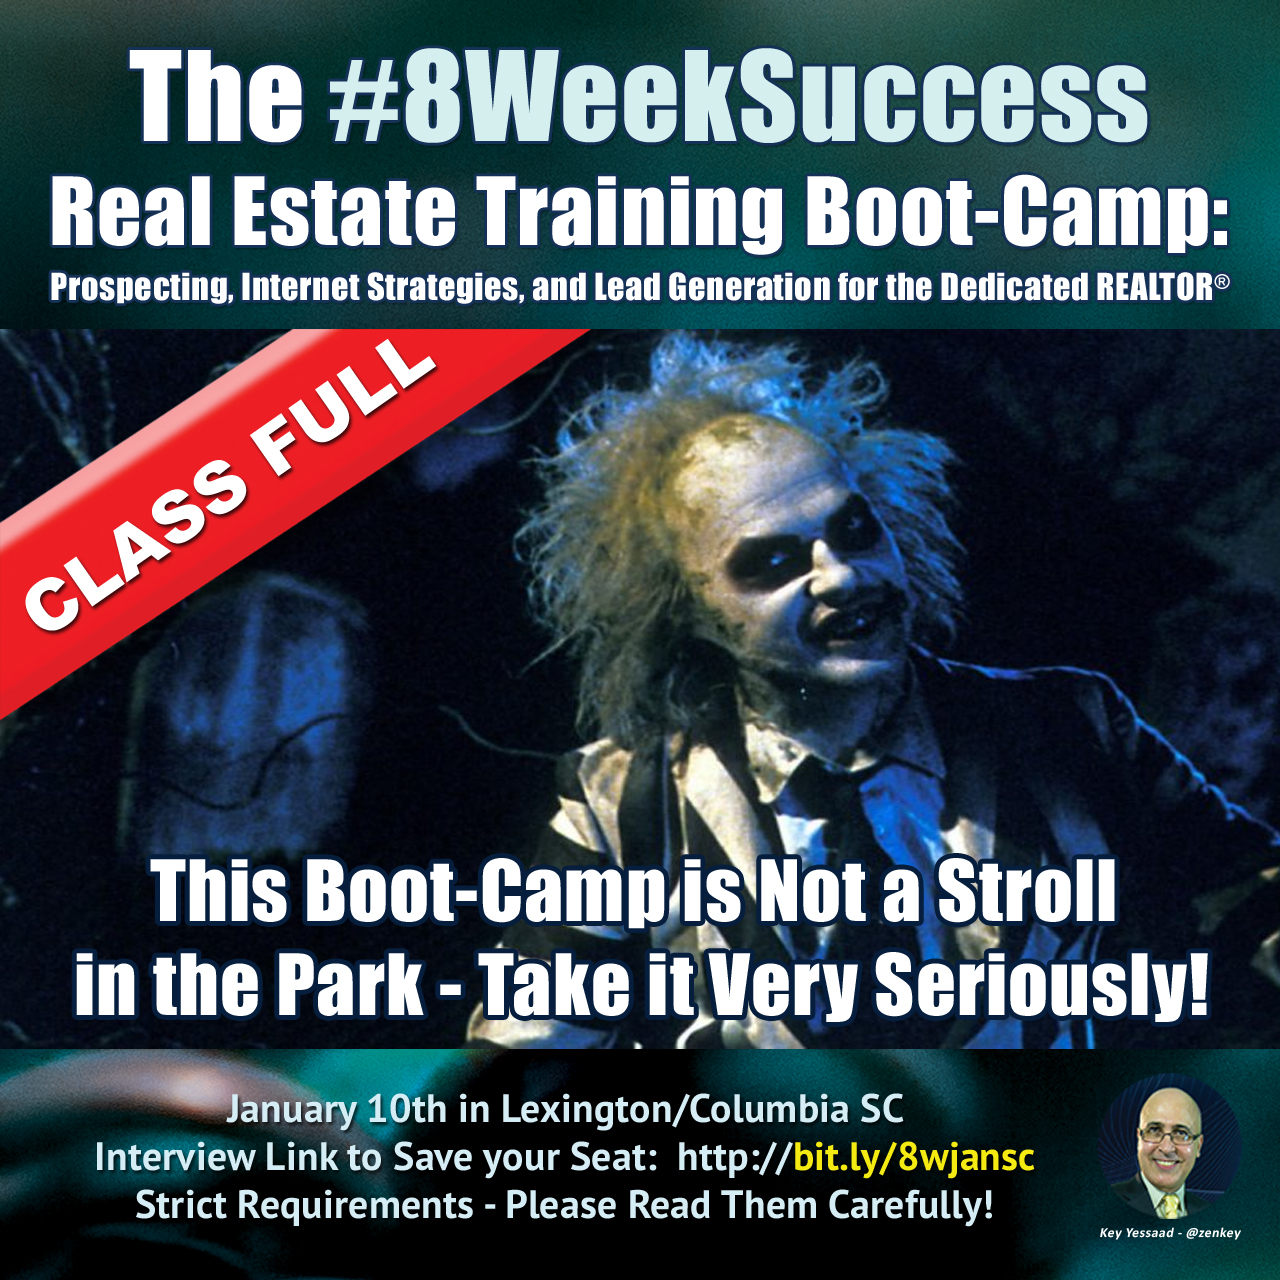 The #8WeekSuccess Boot-Camp in Columbia SC is FULL... #20in20